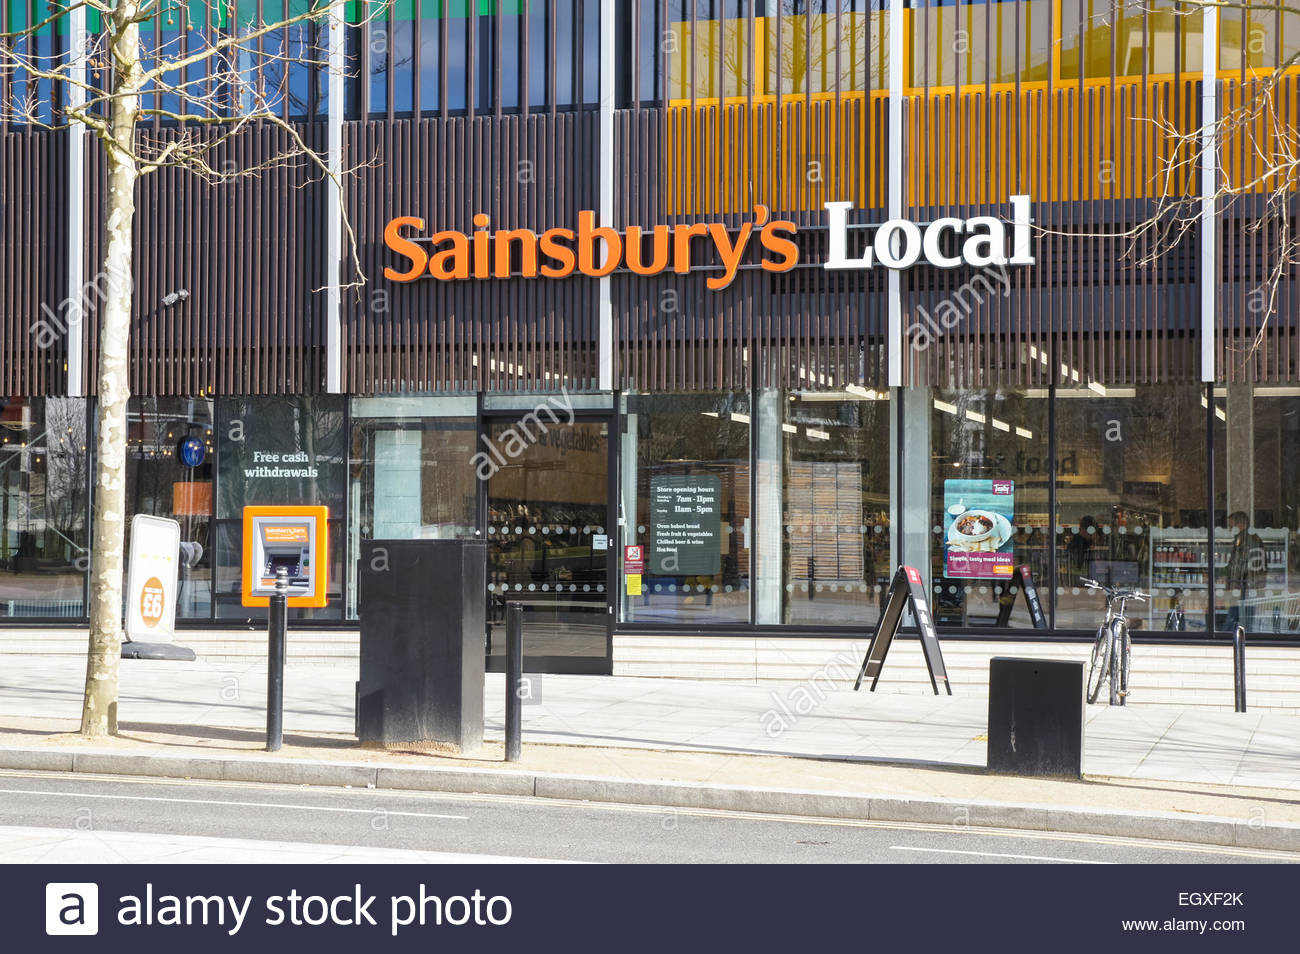 Seductive Sainsburys Logo Stock Photos  Sainsburys Logo Stock Images  Alamy With Outstanding Sainsburys Local Store In East Village London Development Stratford E  London England United Kingdom Uk With Delightful Roof Garden Ideas Also The Garden Room Bakewell In Addition Covent Garden Gluten Free And Cheap Gardening Ideas As Well As Springtime Garden Centre Additionally How To Build Raised Garden Beds On A Slope From Alamycom With   Delightful Sainsburys Logo Stock Photos  Sainsburys Logo Stock Images  Alamy With Seductive Cheap Gardening Ideas As Well As Springtime Garden Centre Additionally How To Build Raised Garden Beds On A Slope And Outstanding Sainsburys Local Store In East Village London Development Stratford E  London England United Kingdom Uk Via Alamycom